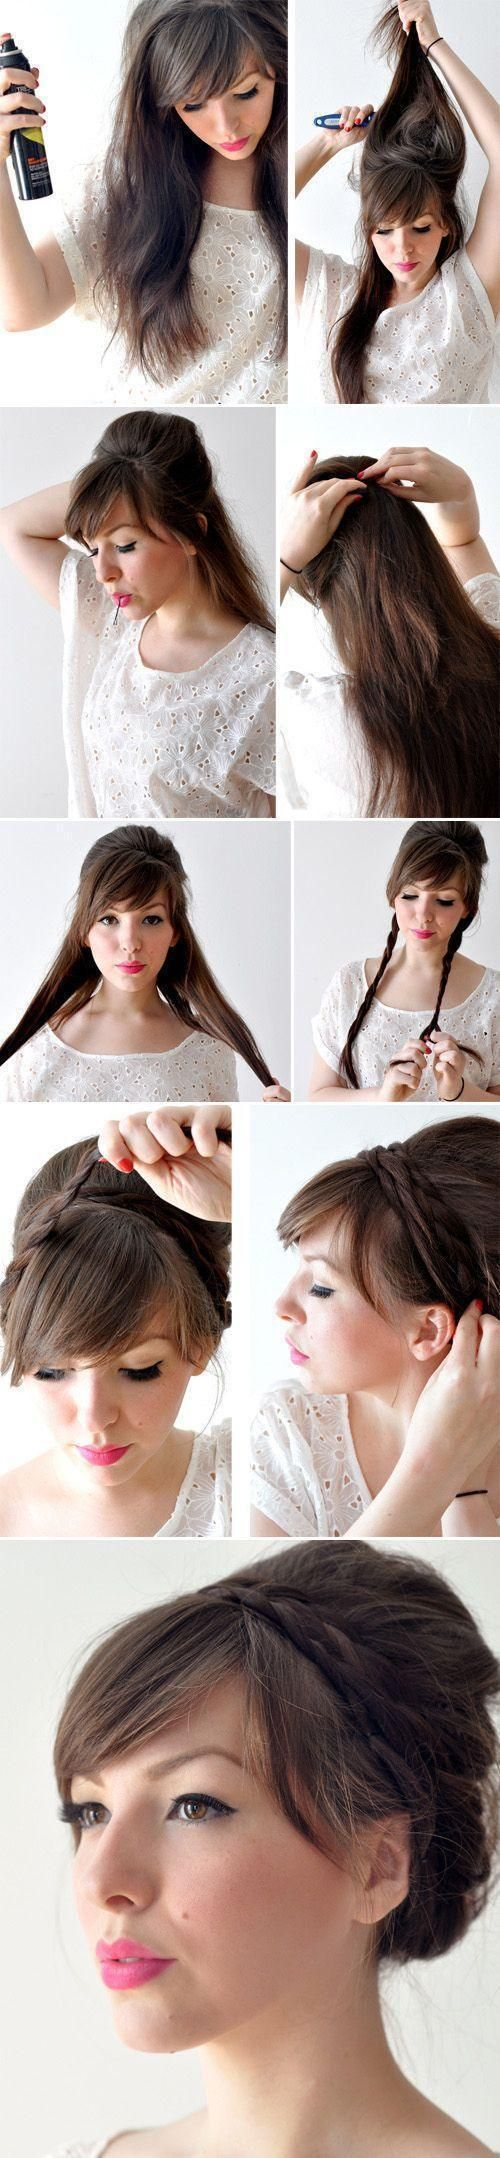 best hairstyles images on pinterest hair style little girl